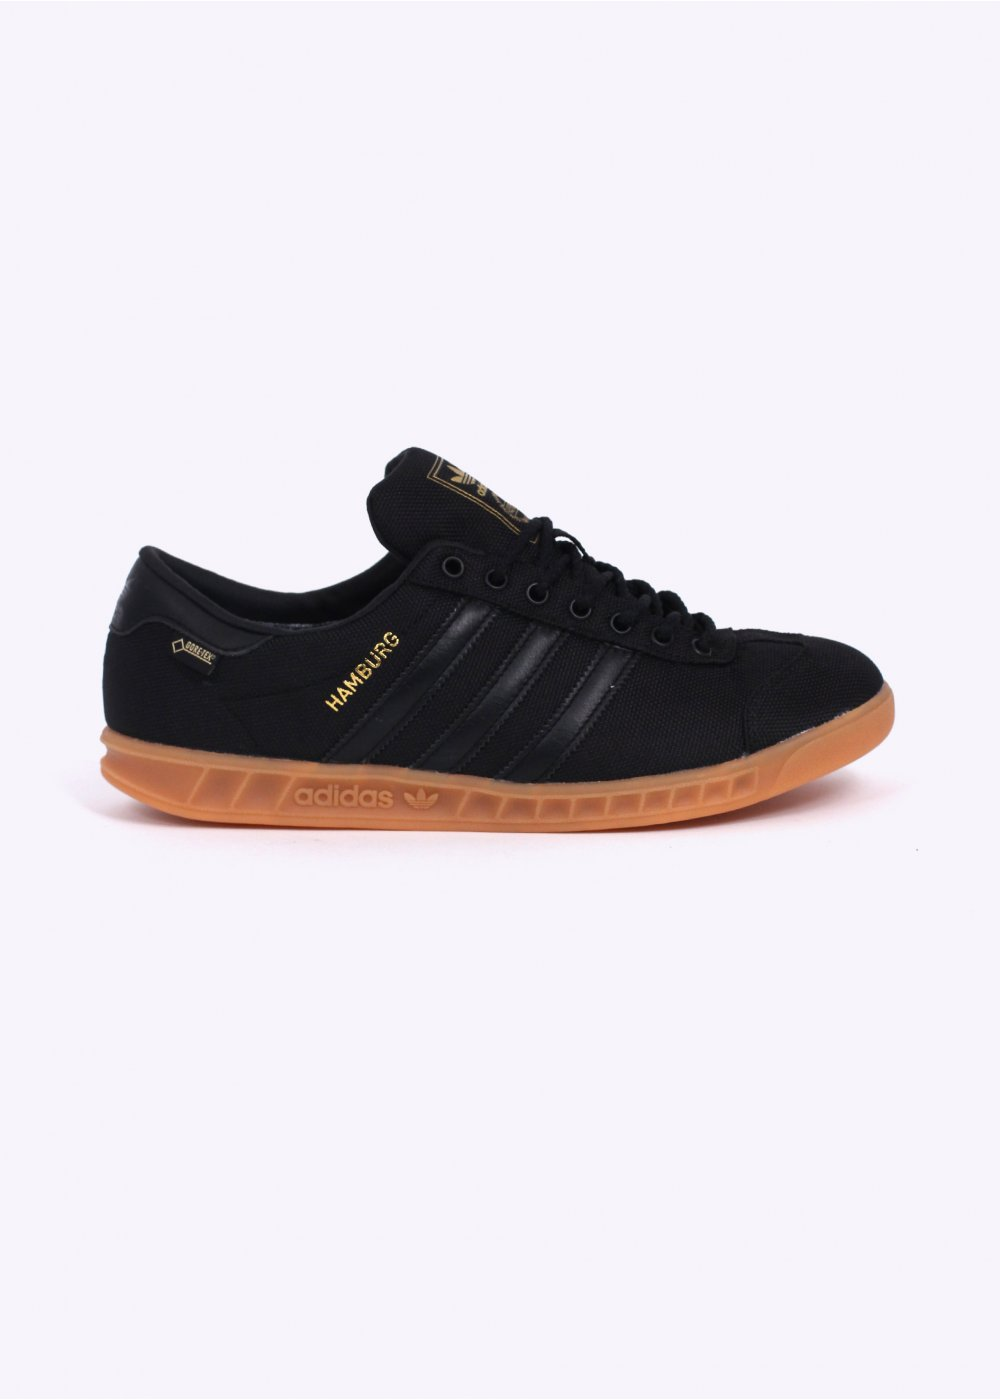 adidas trainers gortex